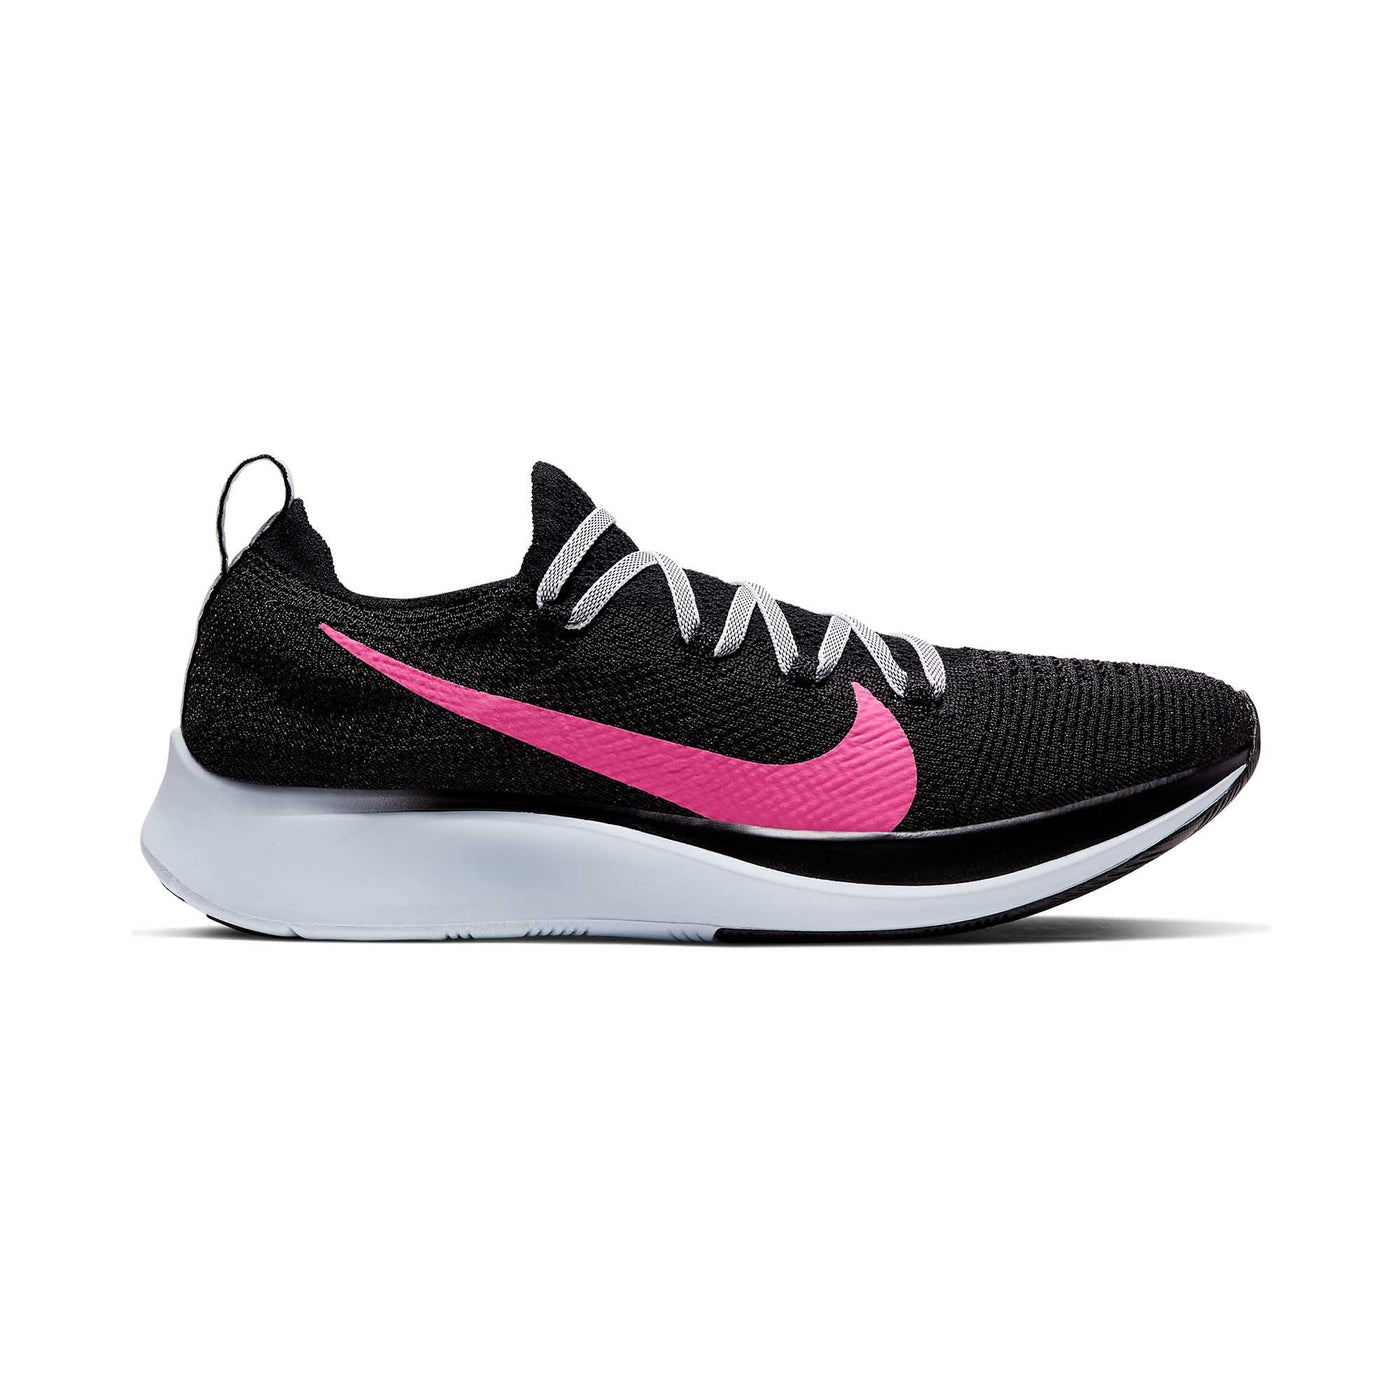 52e920847d5a Women Zoom Fly Flyknit Running Shoes